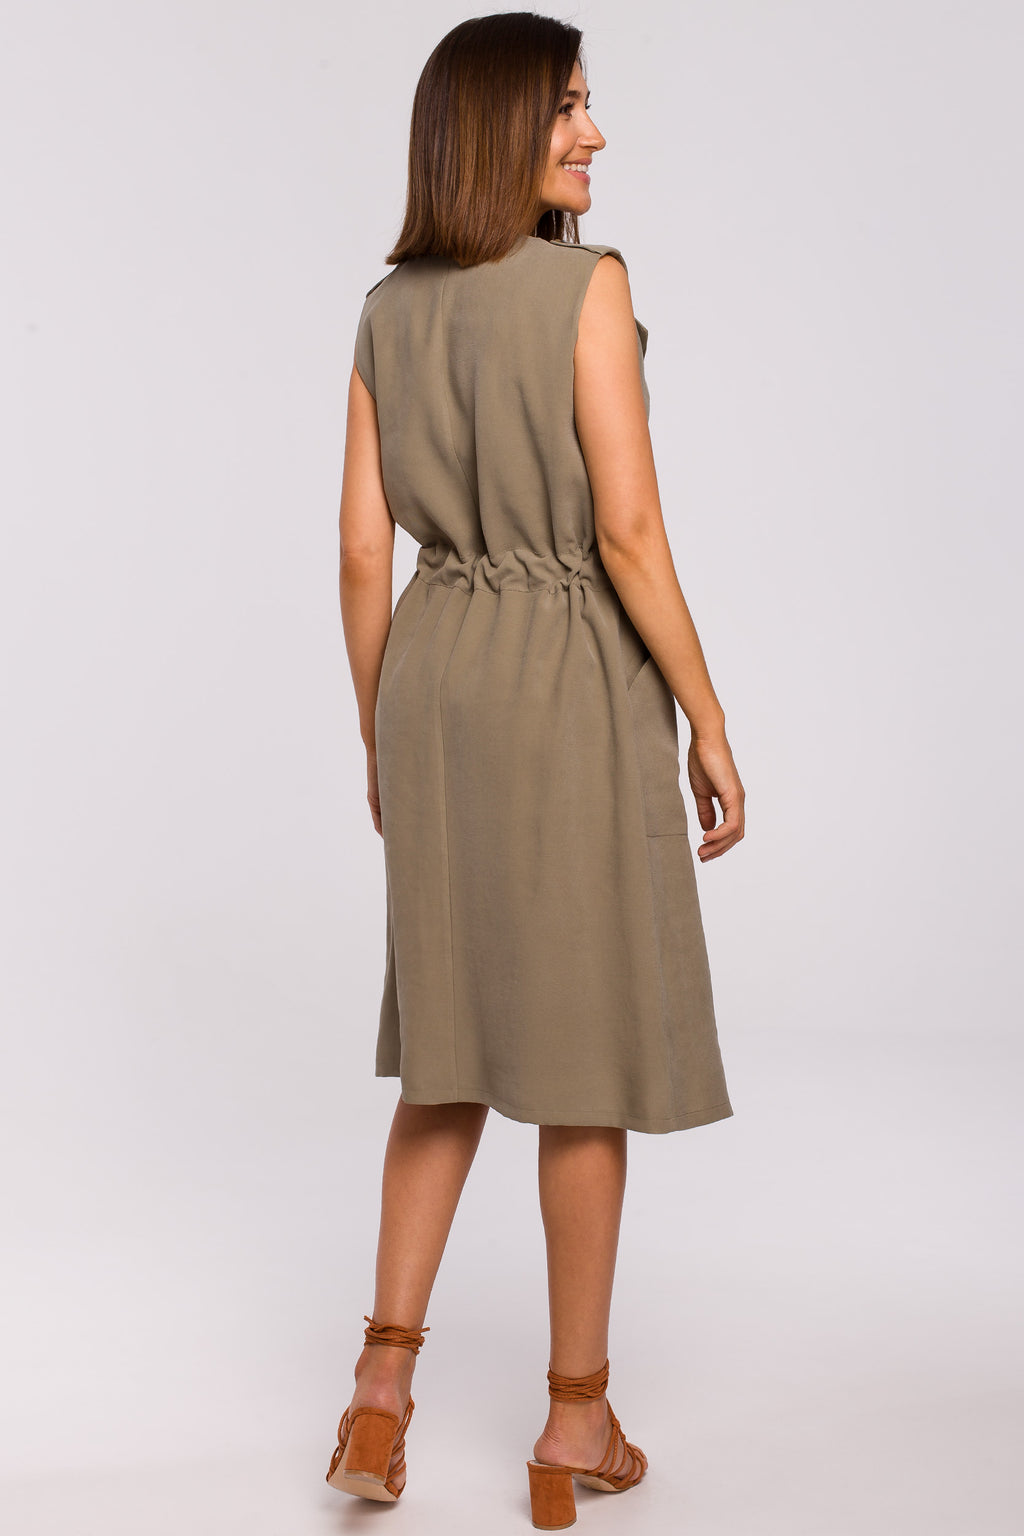 Khaki Midi Shirt Dress - So Chic Boutique